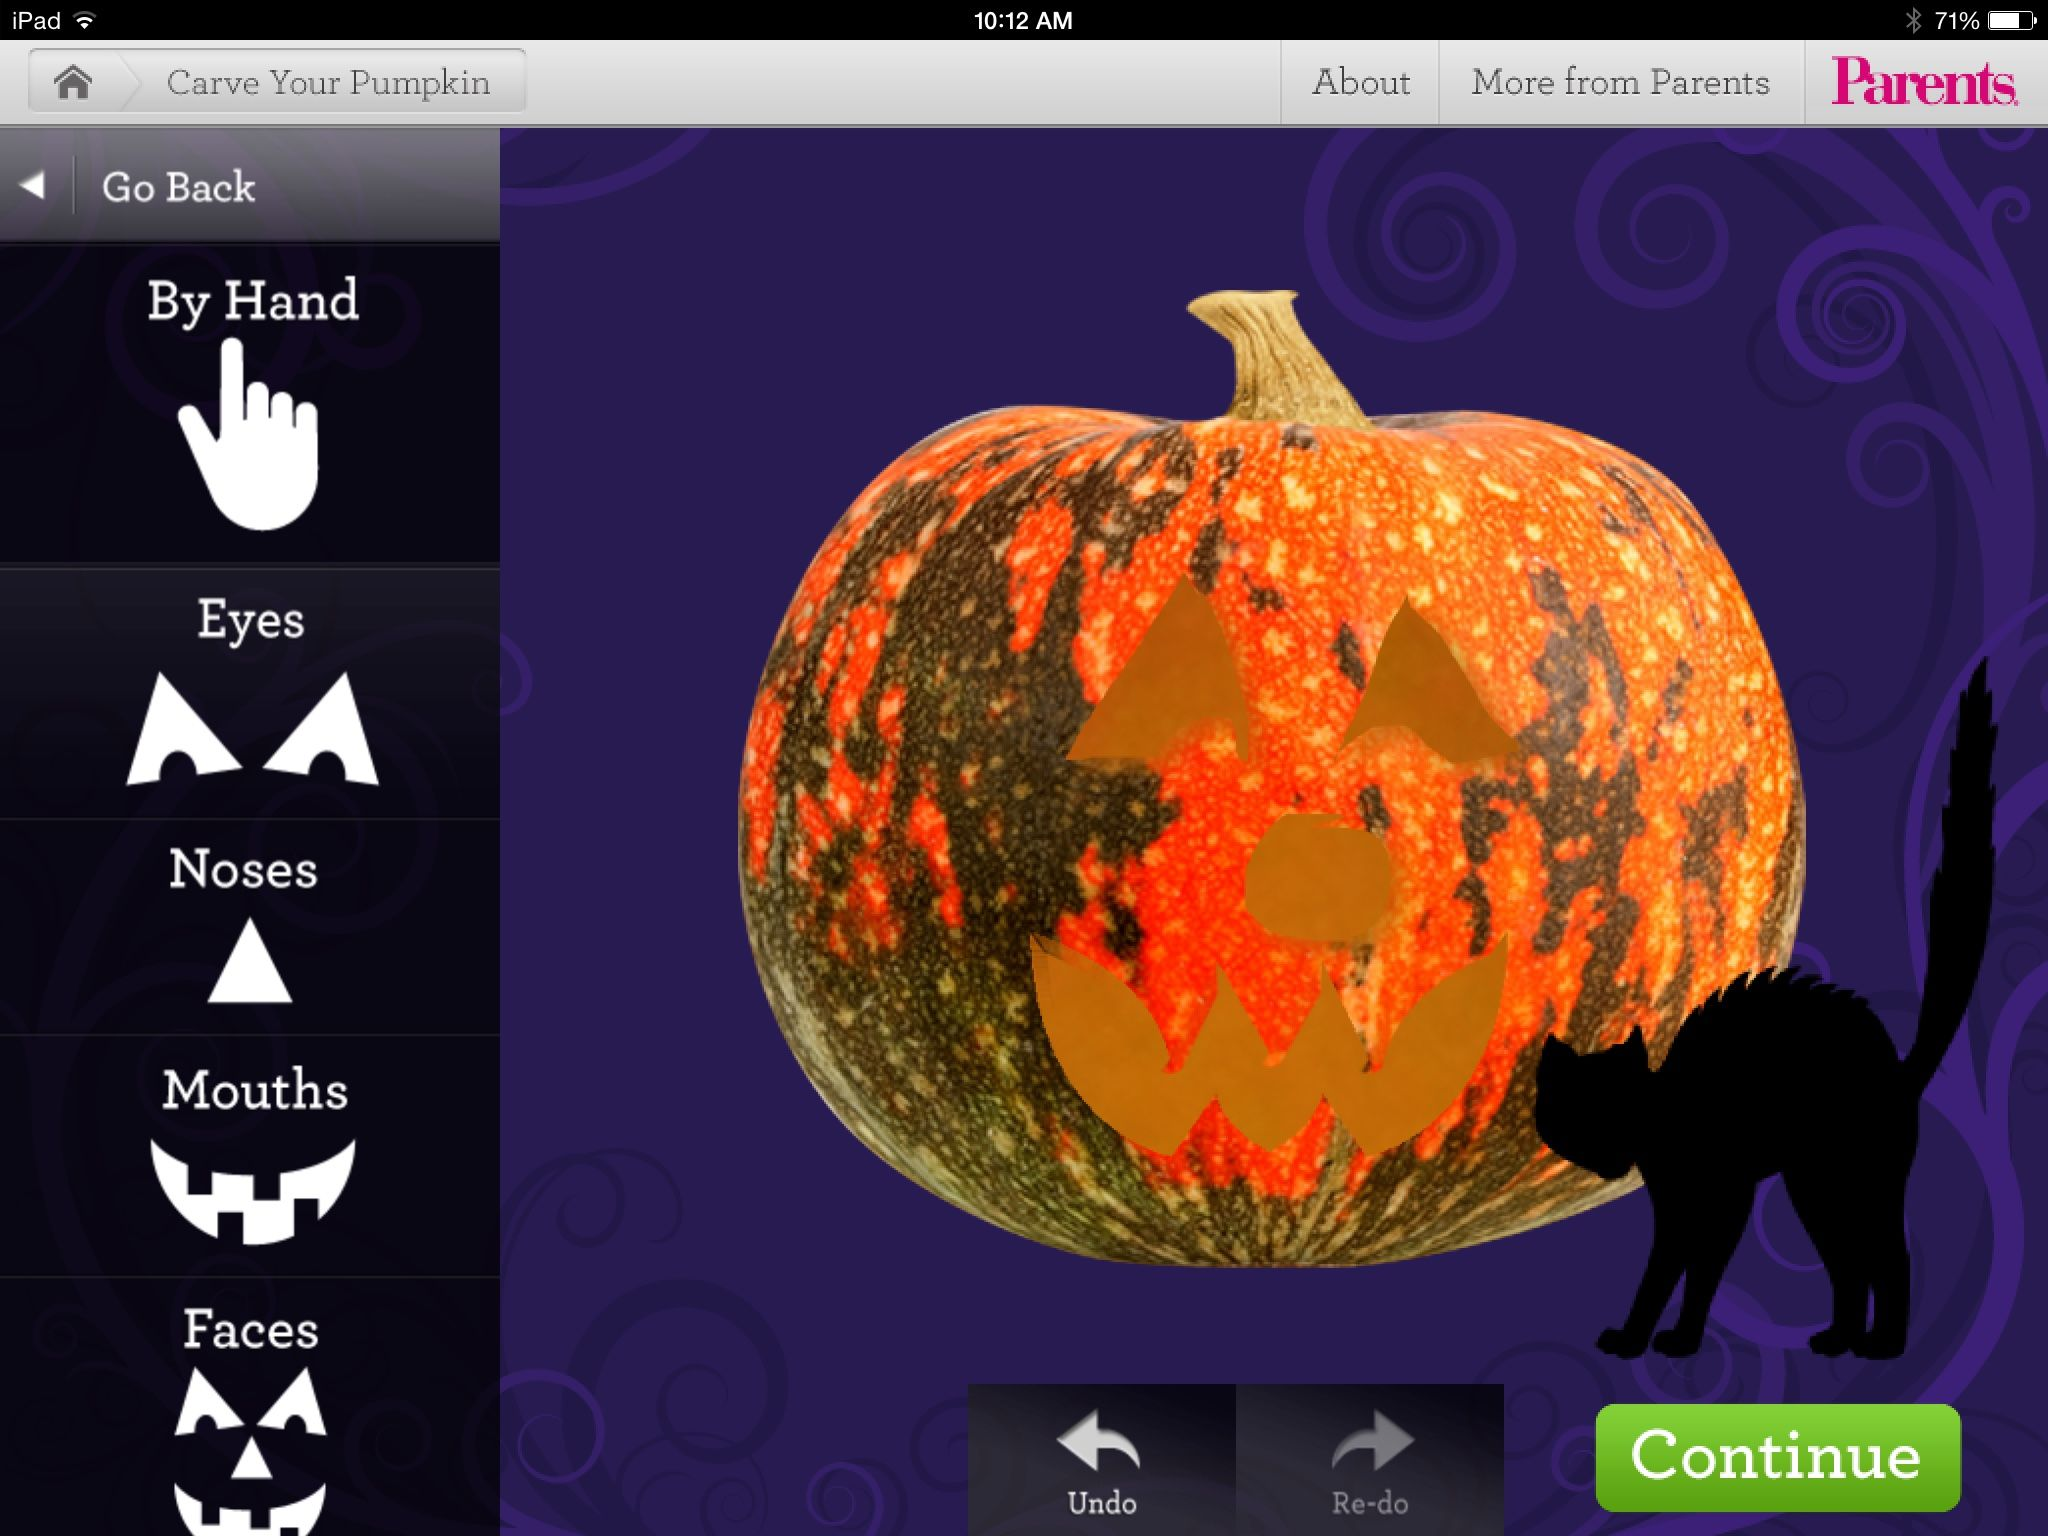 Carve A Pumpkin Apptivities for Fall Carving, School